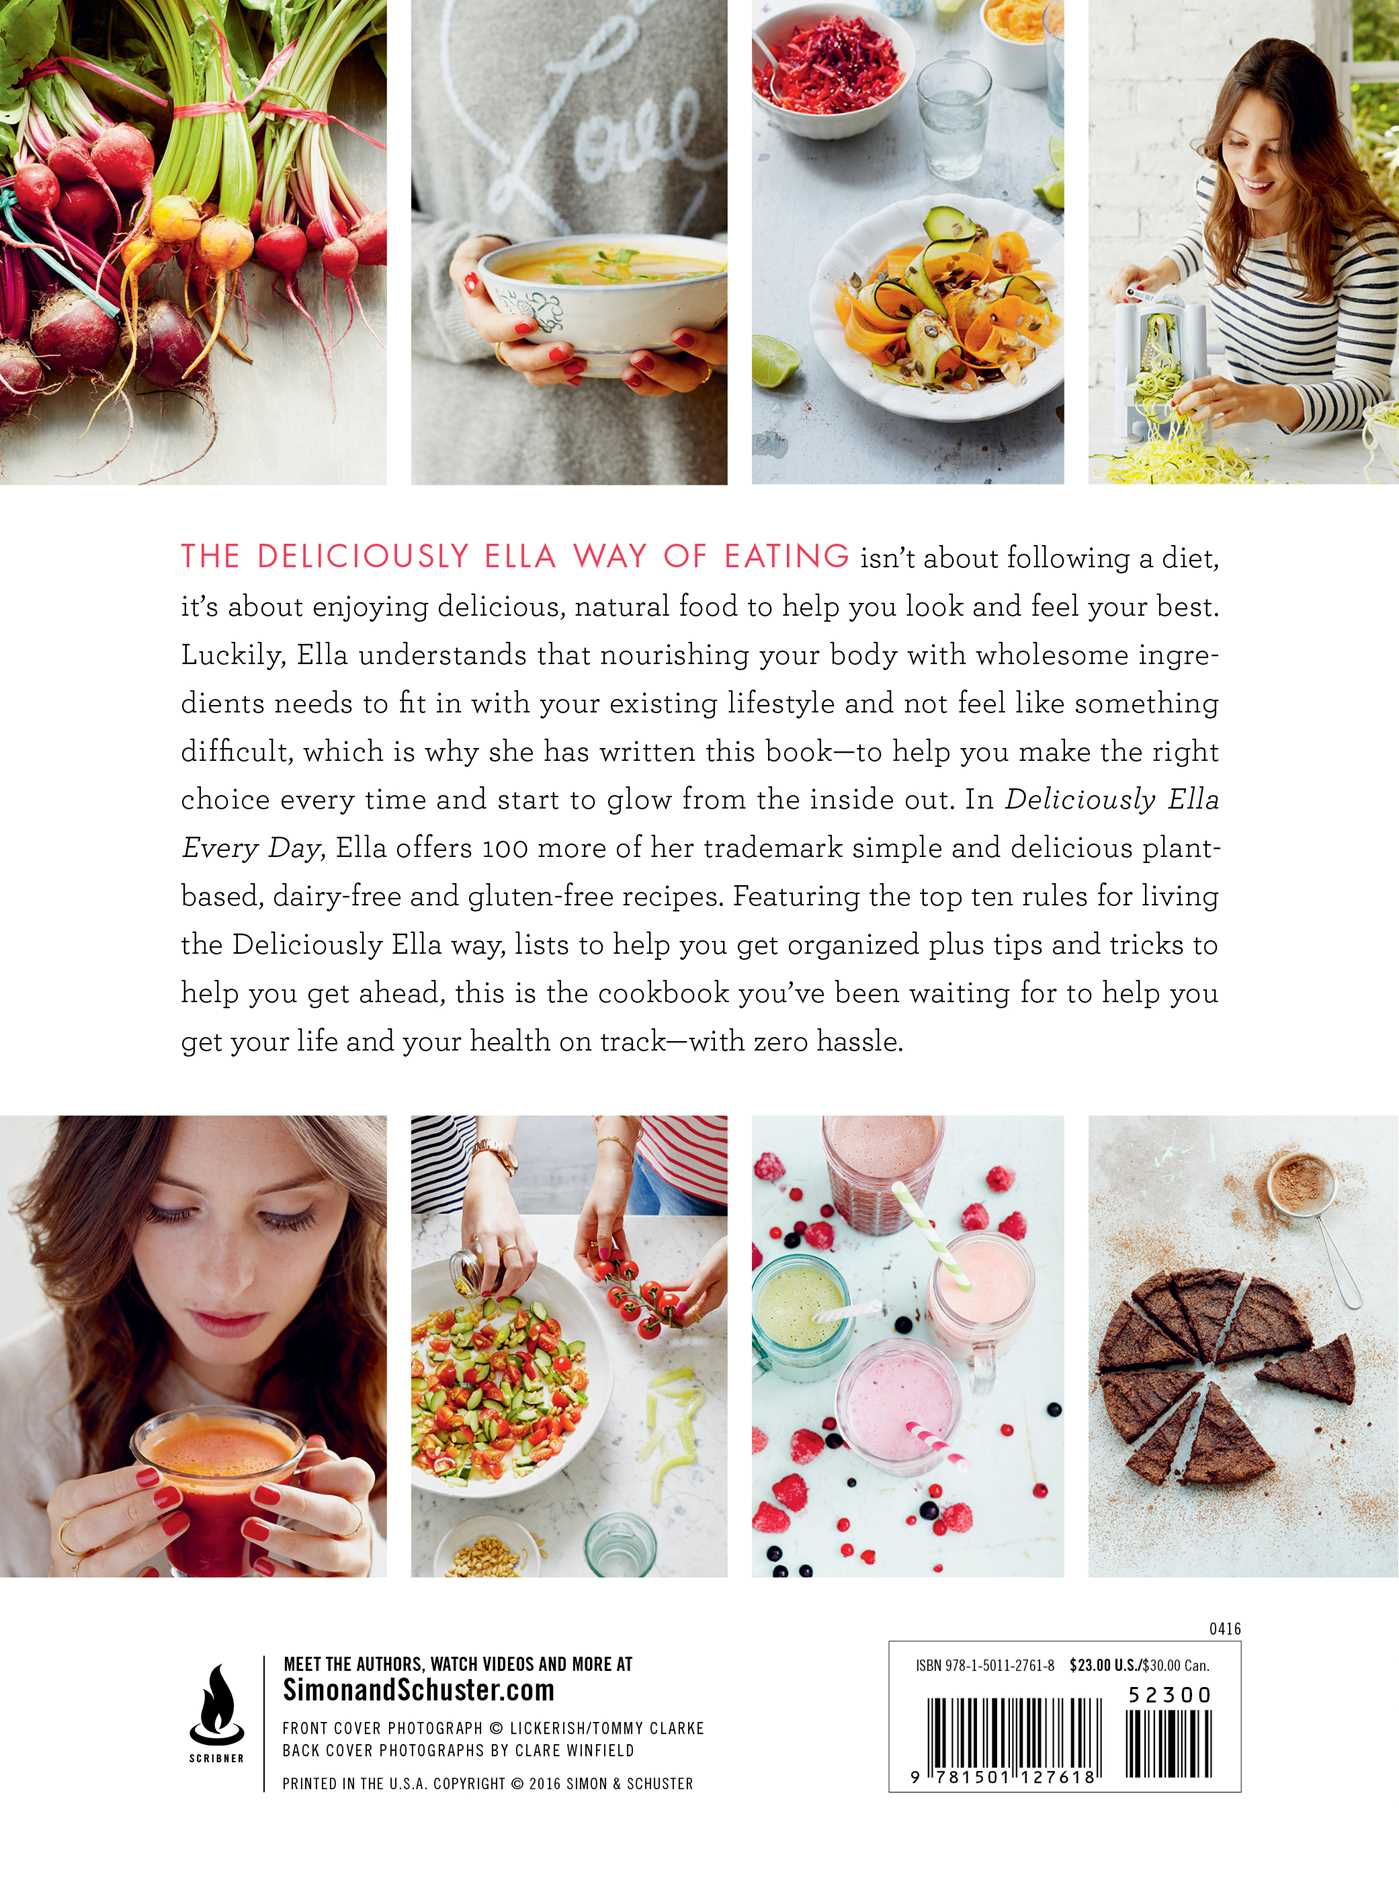 Deliciously ella every day 9781501127618 hr back